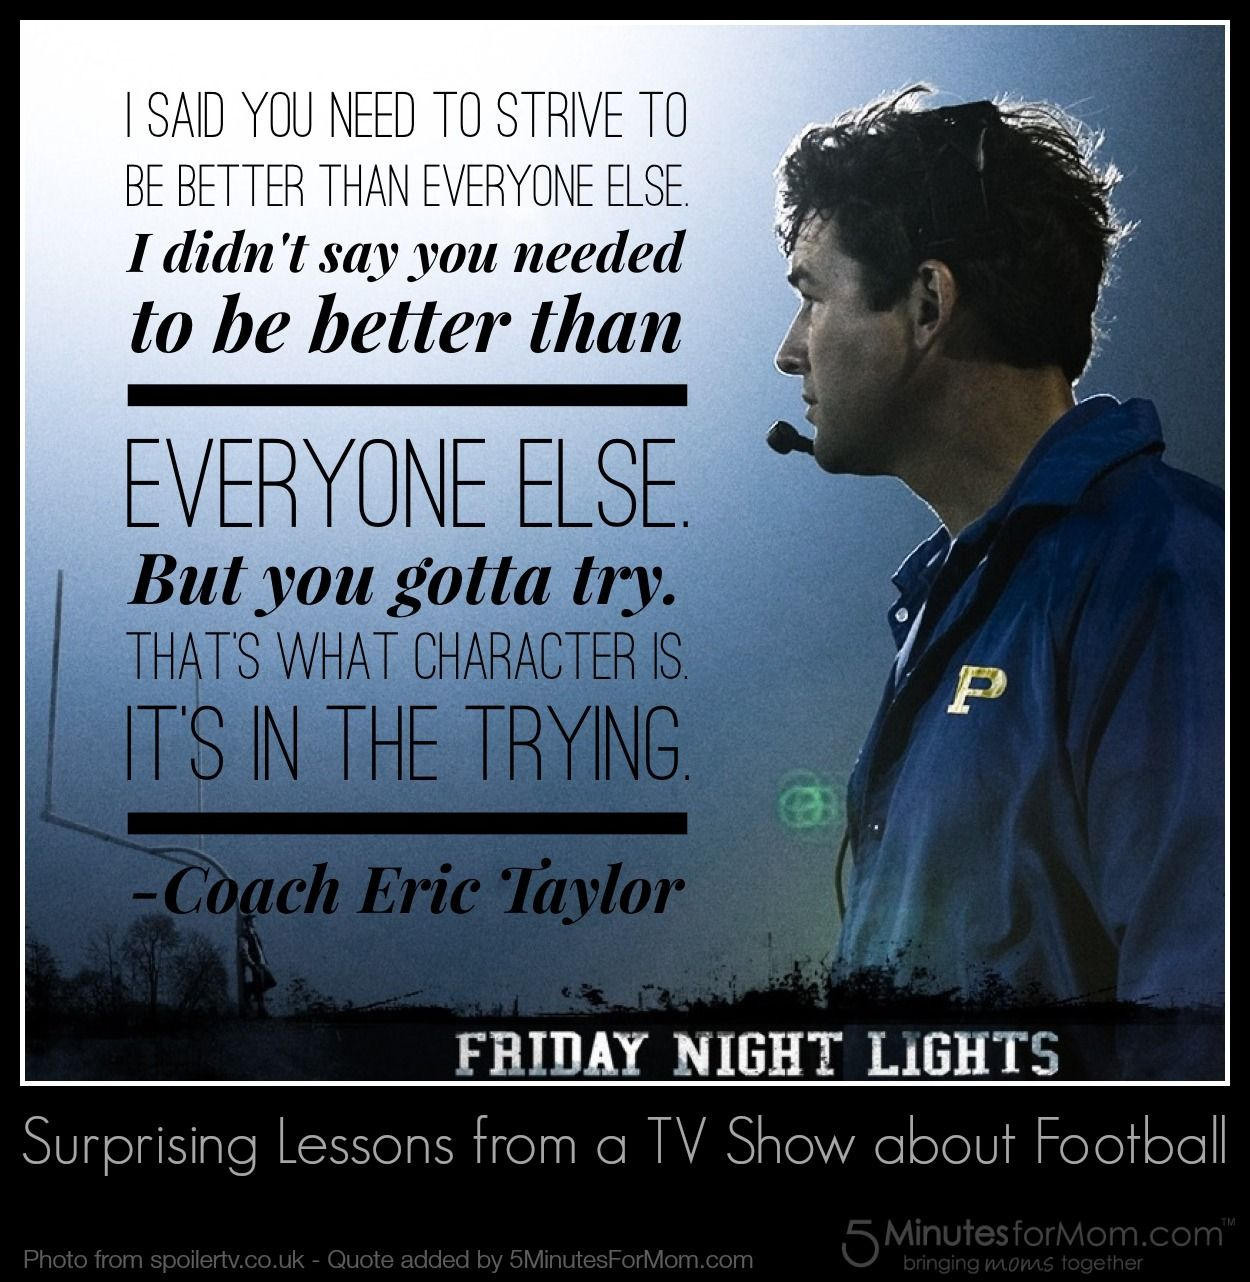 Friday Night Lights Quotes Friday Night Lights   Surprising Lessons from a TV Show about  Friday Night Lights Quotes